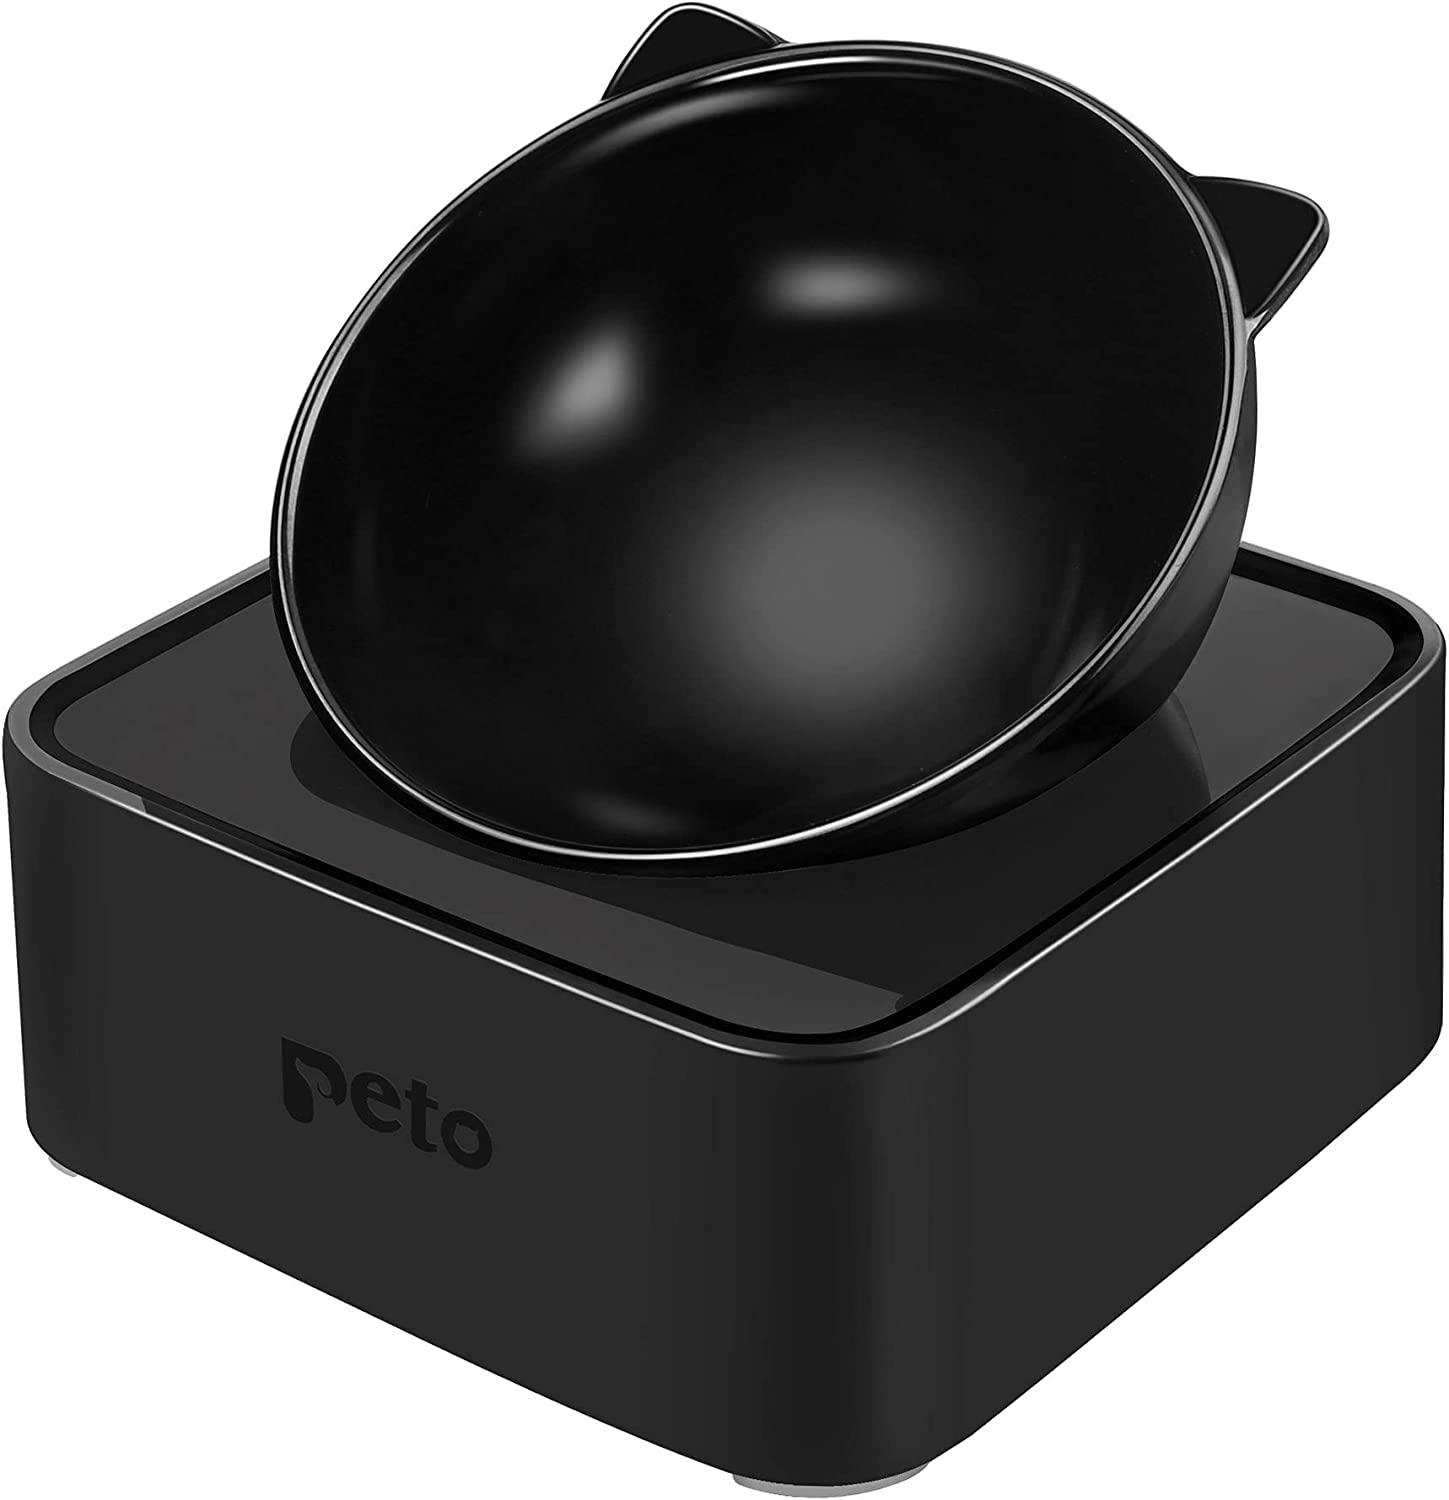 Peto Cat Dog Bowl Raised Cat Food Water Bowl with Detachable Elevated Stand Pet Feeder Bowl No-Spill, 0-30°Adjustable Tilted Pet Bowl Stress-Free Suit for Cat Dog (White) (Black)